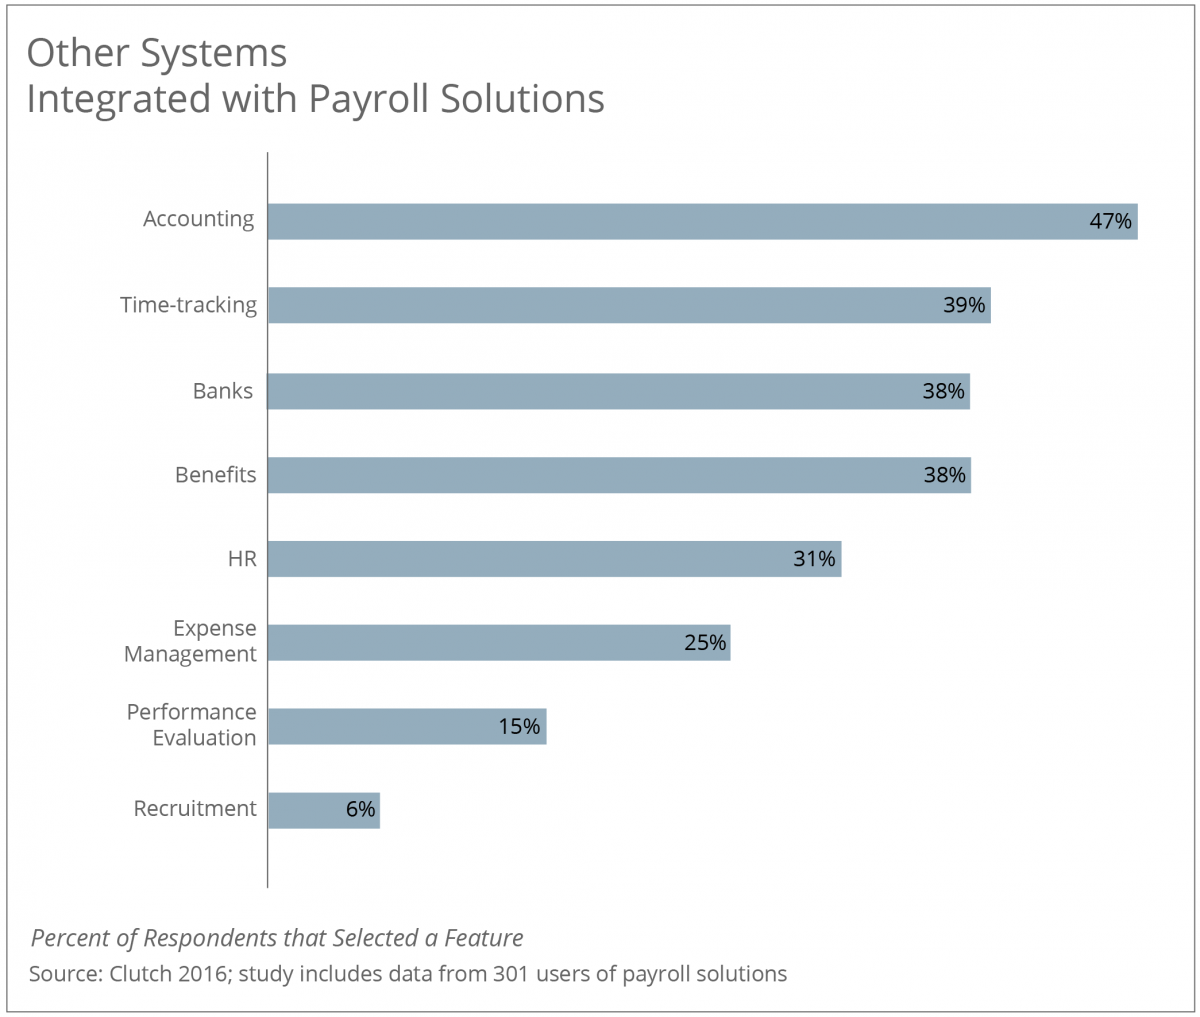 Other Systems Integrated with Payroll Solutions